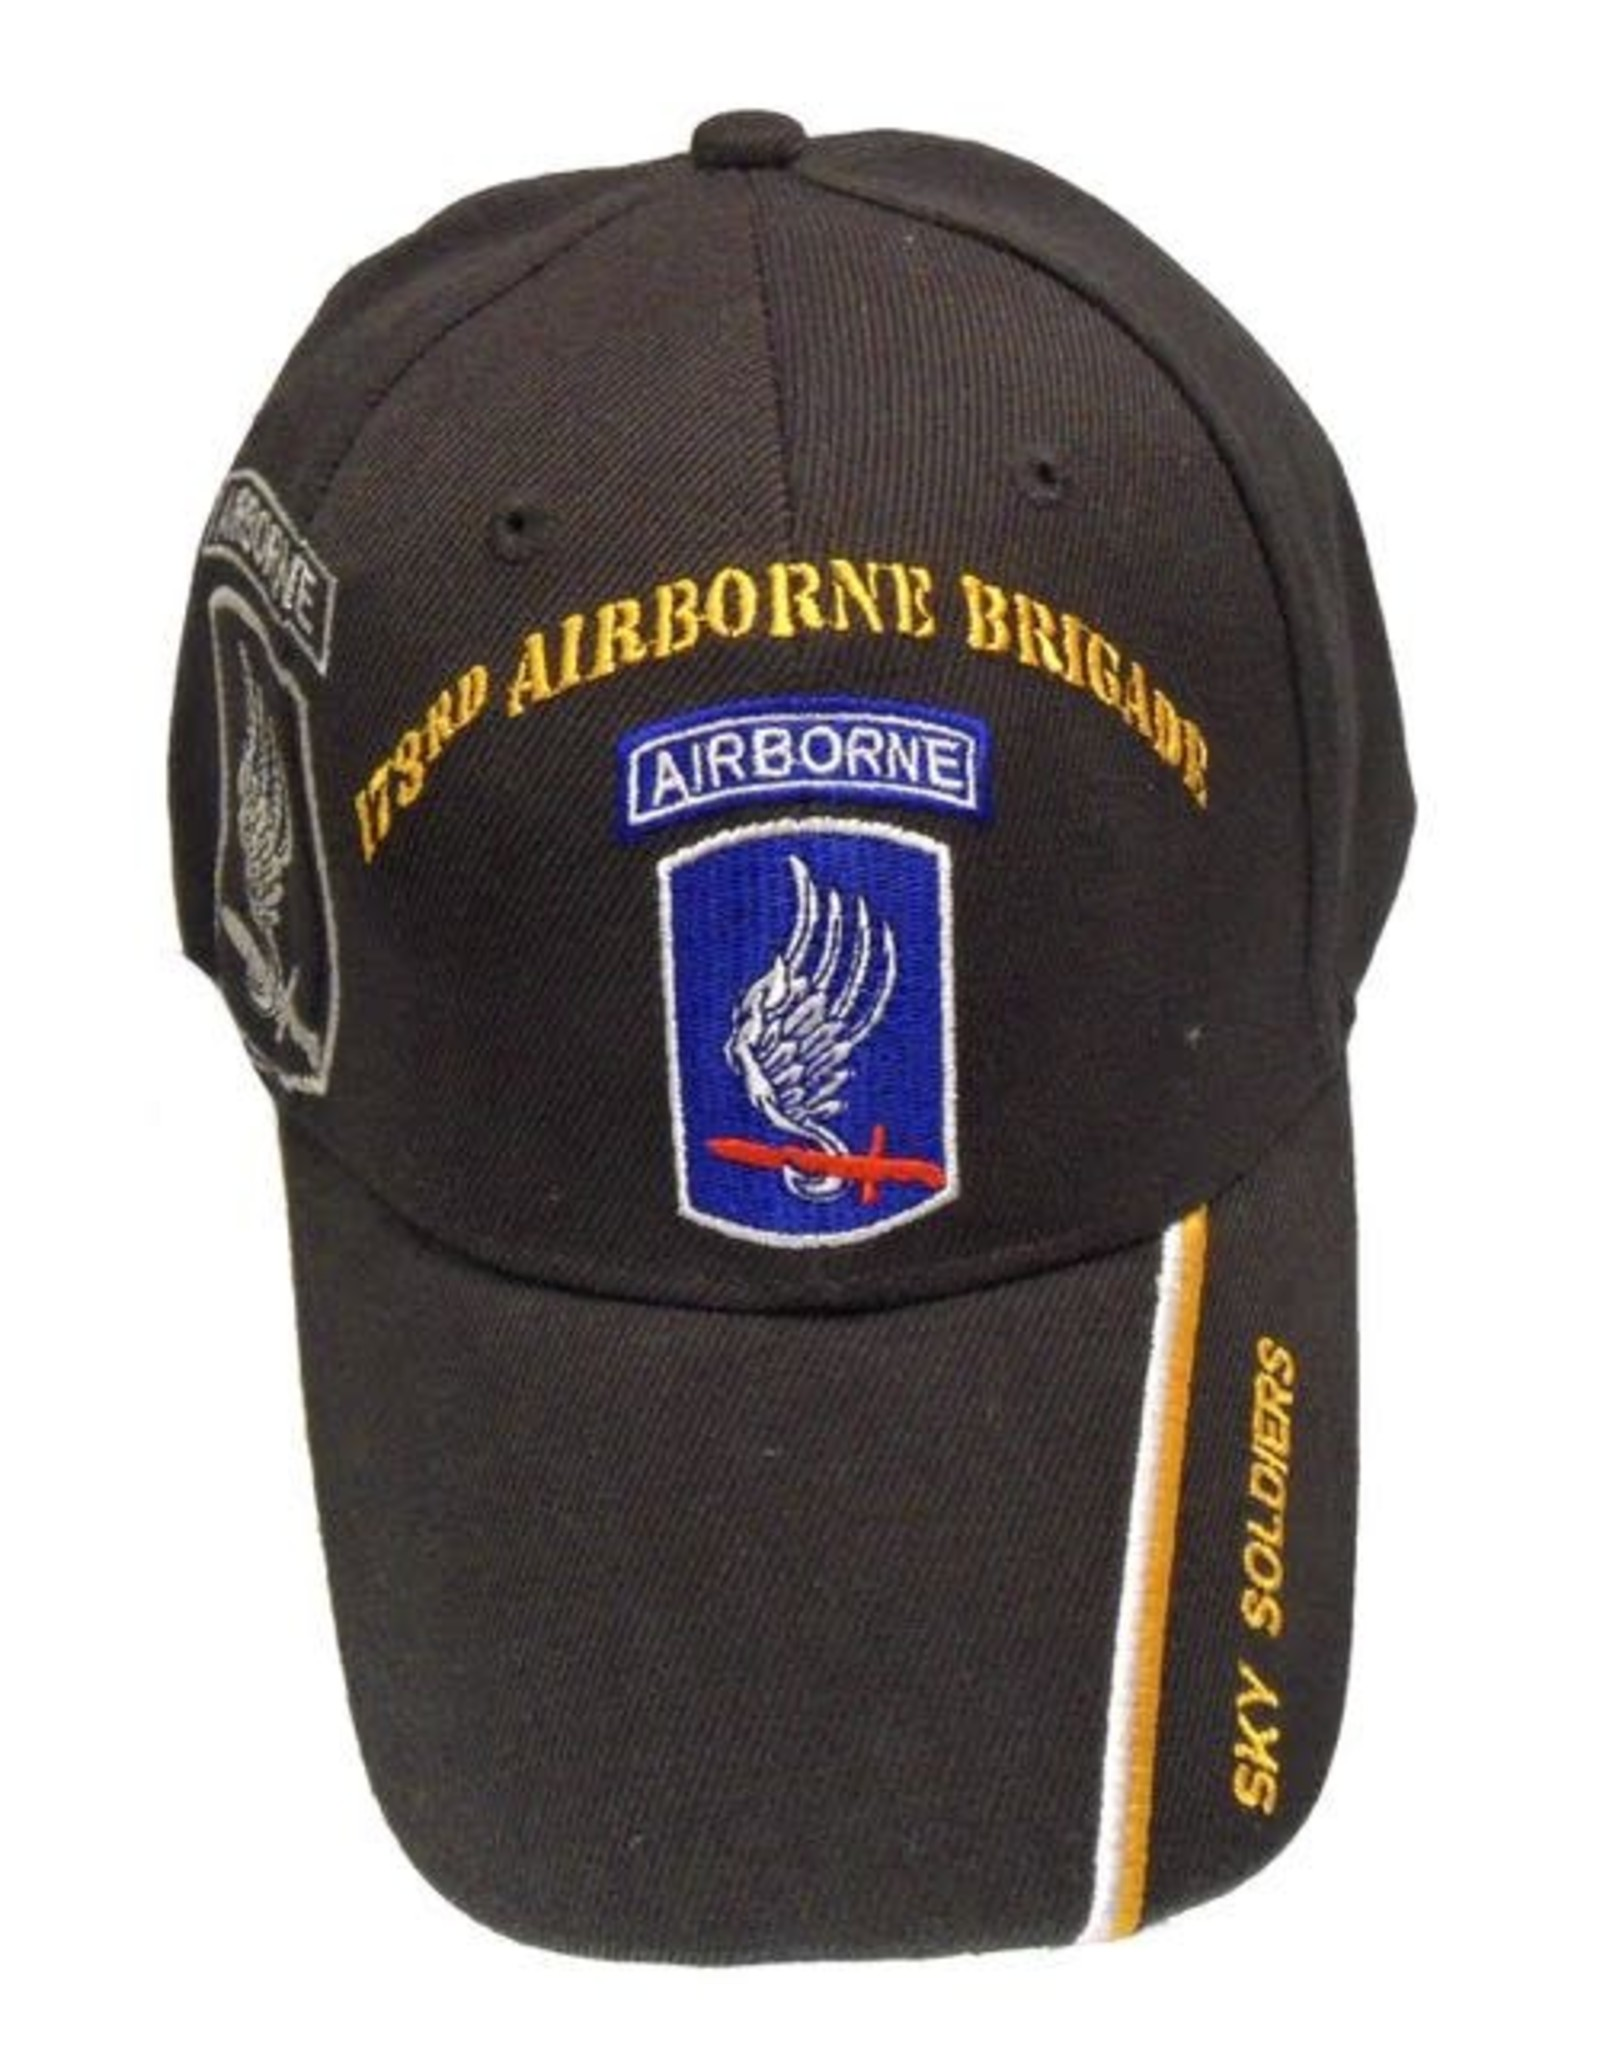 MidMil 173rd Airborne Brigade Hat with Shadow and Motto on Bill Black